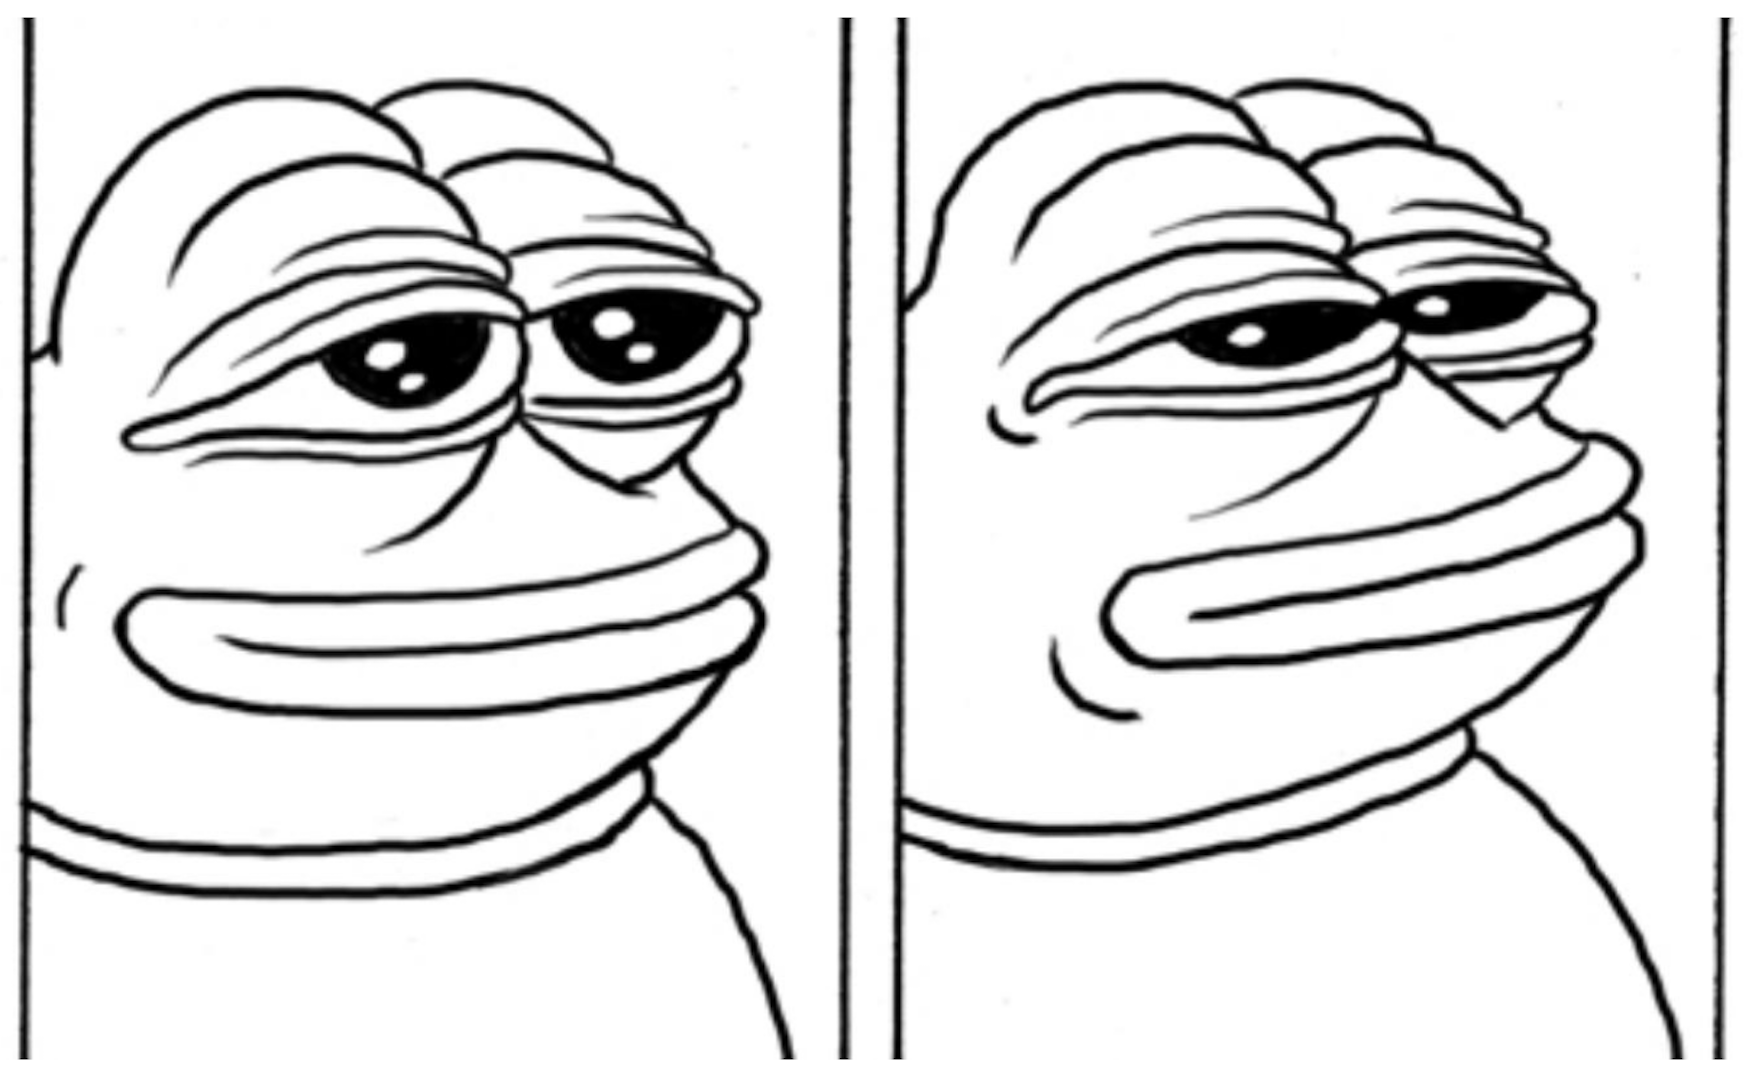 1752x1080 Pepe The Frog Laid To Rest But Will Live On As A Hate Symbol